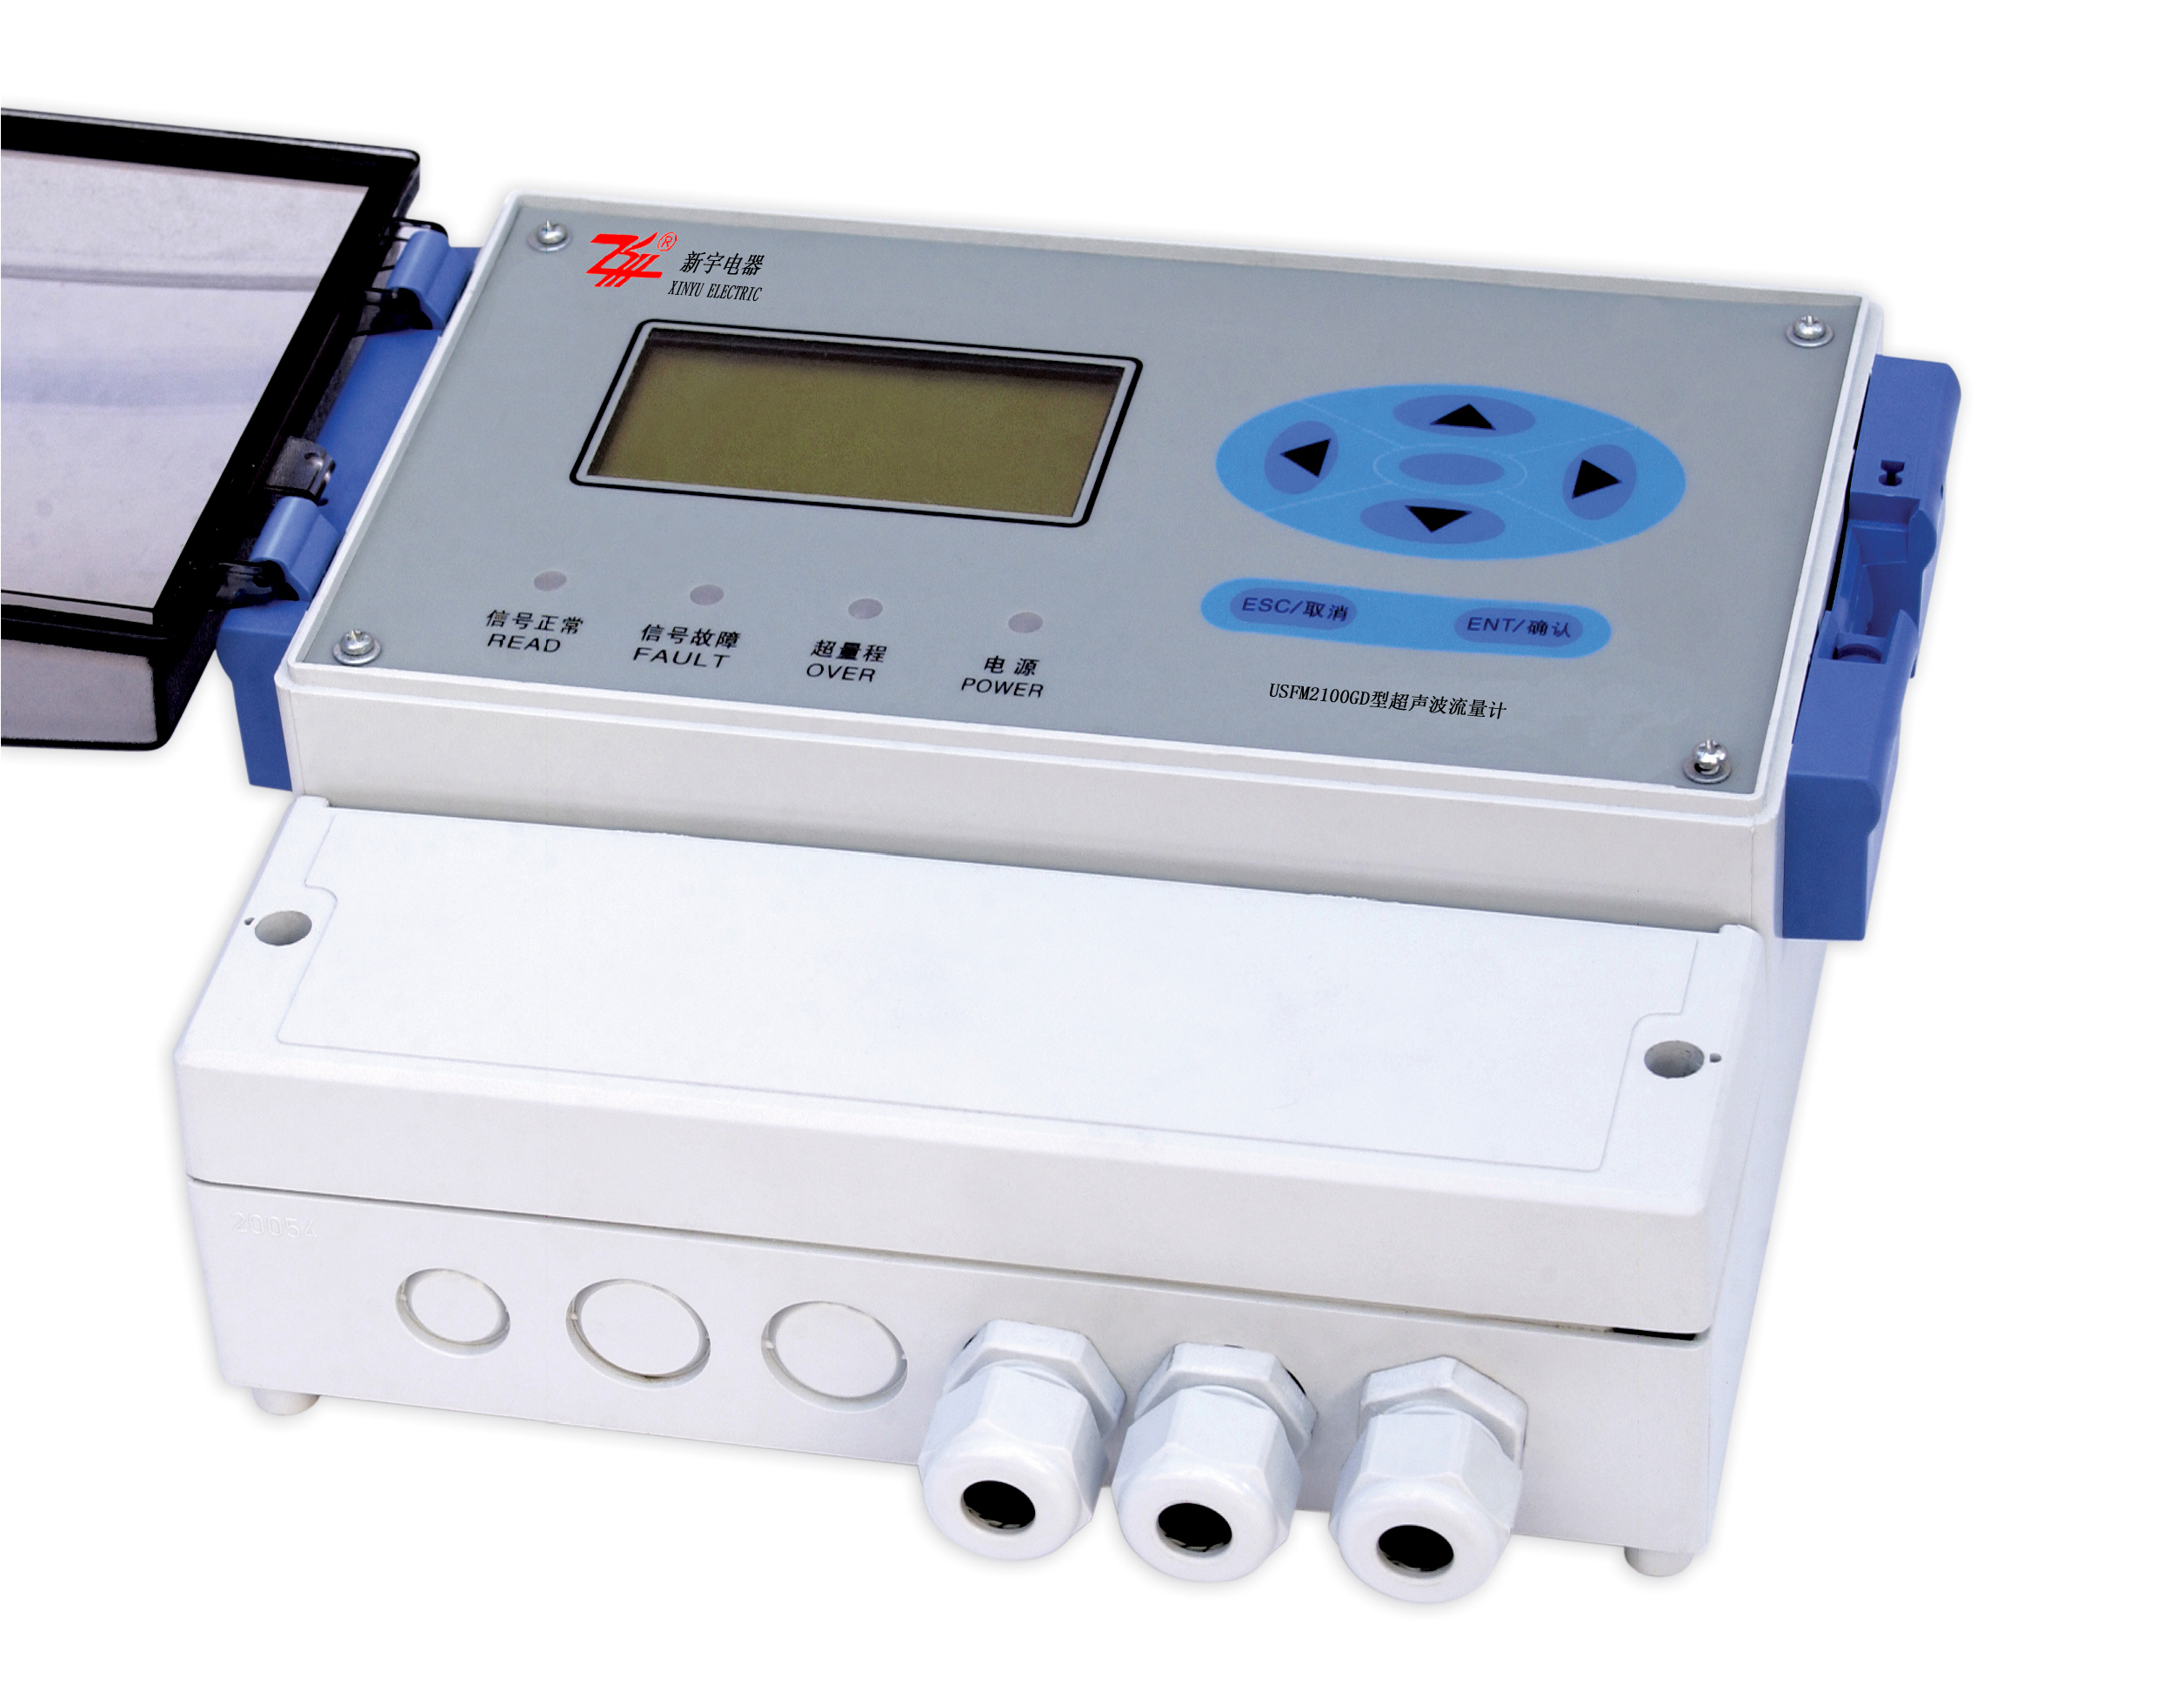 Type USFM2100GD doppler type ultrasonic flowmeter